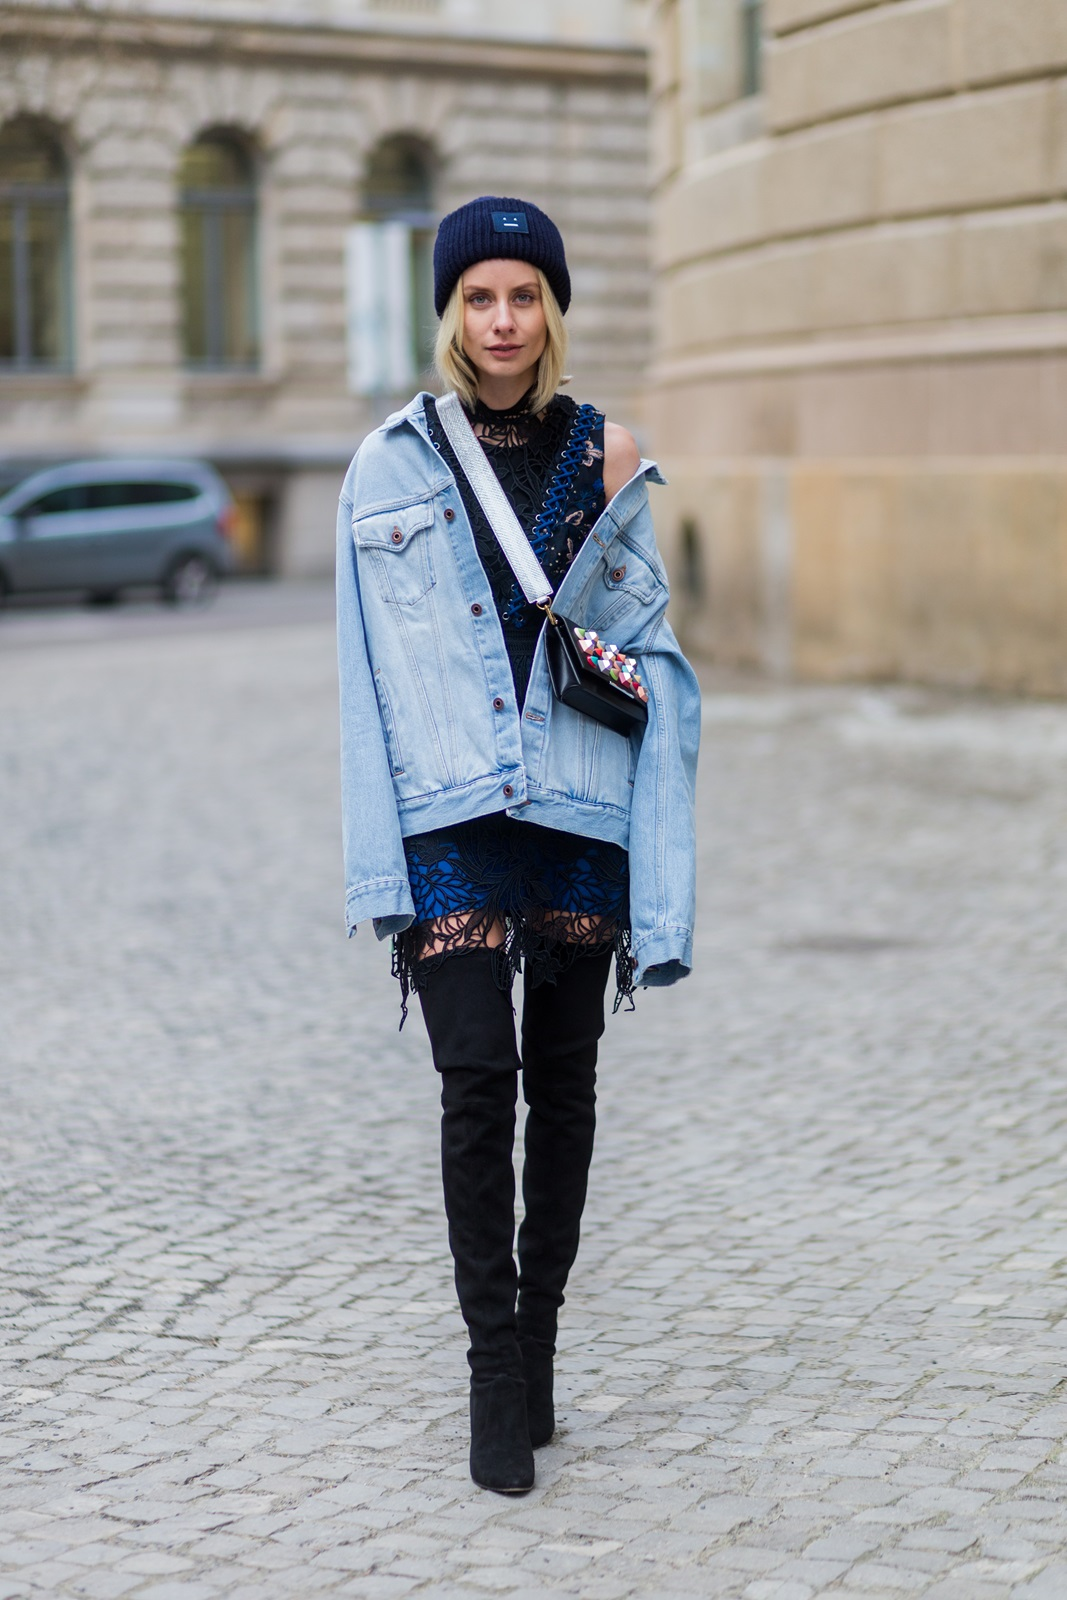 BERLIN, GERMANY - JANUARY 19: Lisa Hahnbueck wearing Off White Printed Denim Jacket Men Section, Self-Portrait Embroidered Dress with Lacing, Over knee Boots Stuart Weitzman Style Alllegs, Acne Studios Beanie, Fendi Clutch with colored Studs with MCM Phython strap during the Mercedes-Benz Fashion Week Berlin A/W 2017 at Kaufhaus Jandorf on January 19, 2017 in Berlin, Germany. (Photo by Christian Vierig/Getty Images) *** Local Caption *** Lisa Hahnbueck